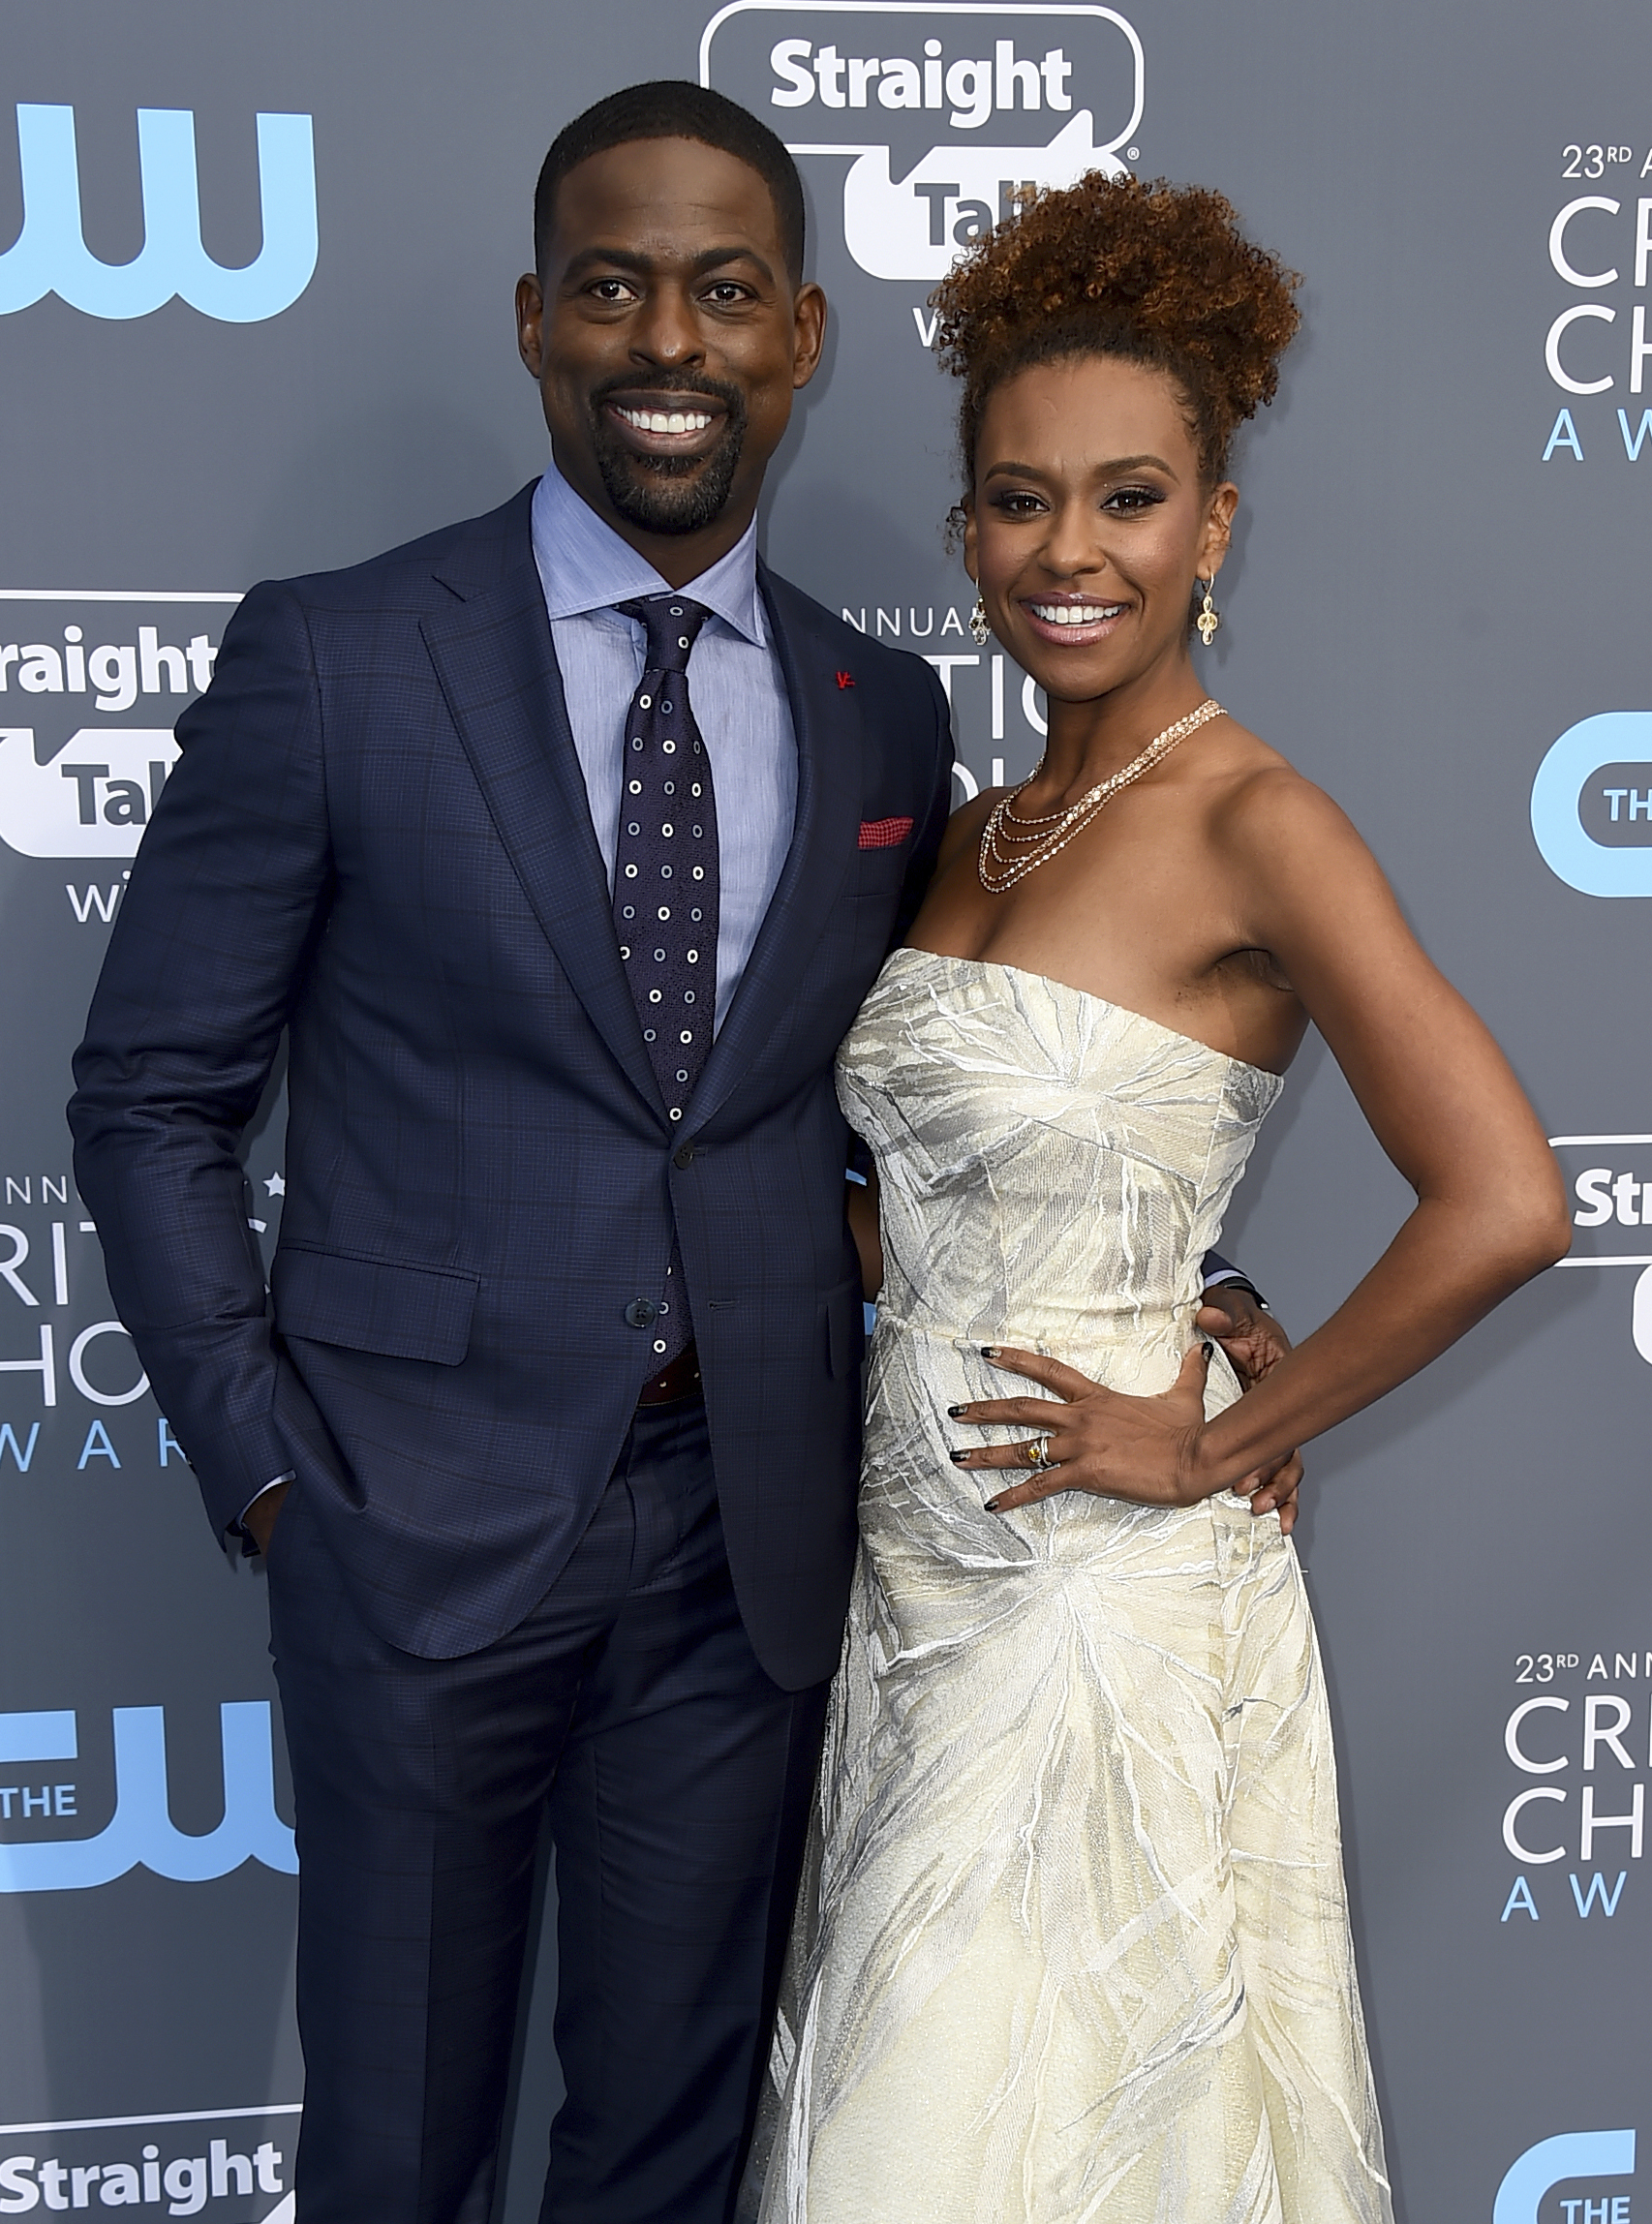 <div class='meta'><div class='origin-logo' data-origin='AP'></div><span class='caption-text' data-credit='Jordan Strauss/Invision/AP'>Sterling K. Brown, left, and Ryan Michelle Bathe arrive at the 23rd annual Critics' Choice Awards at the Barker Hangar on Thursday, Jan. 11, 2018, in Santa Monica, Calif.</span></div>